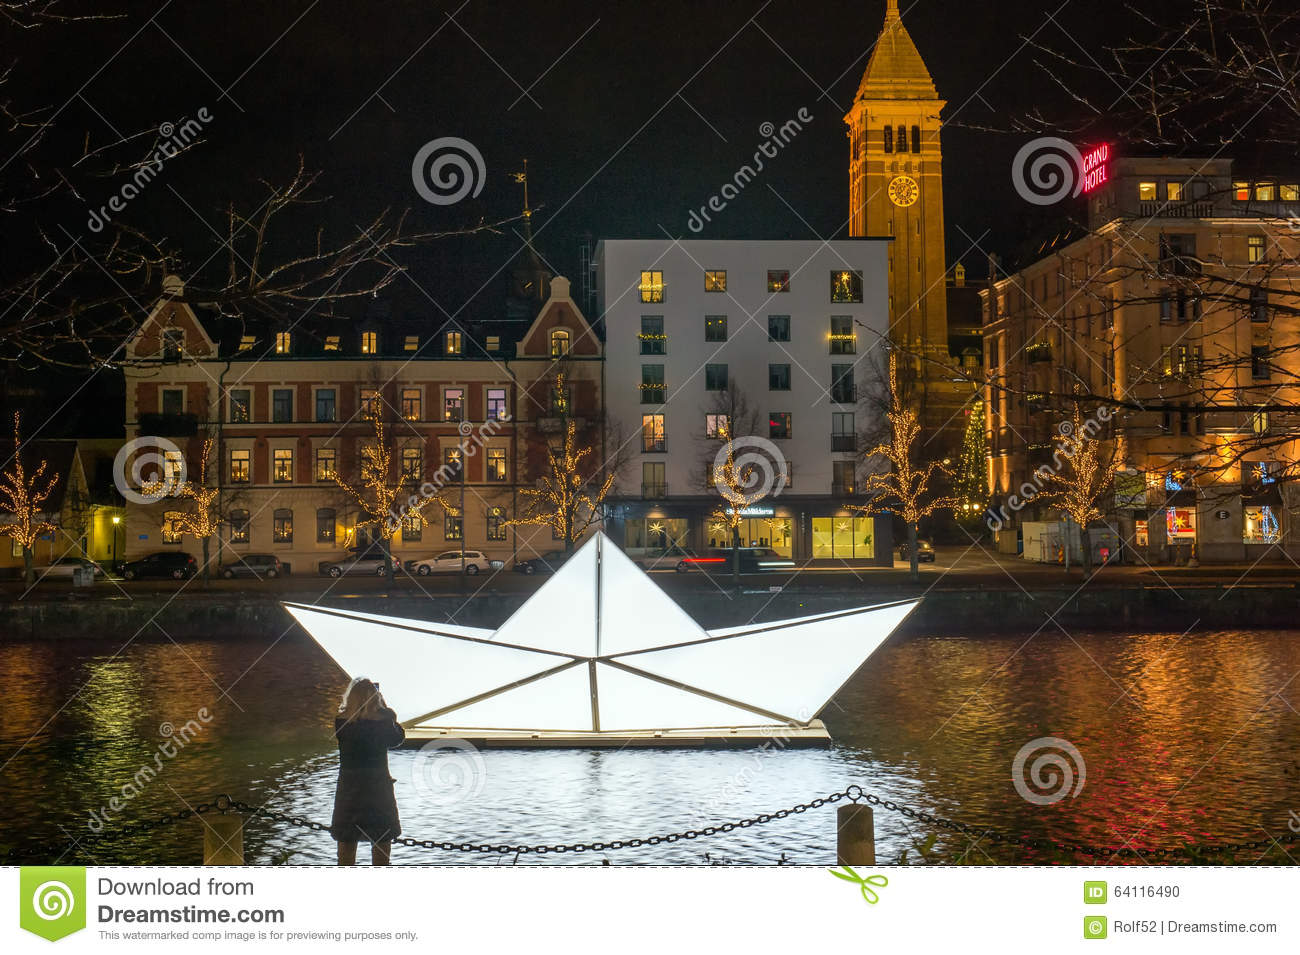 Christmas In Sweden.Christmas In Sweden Editorial Image Image Of Norrkoping